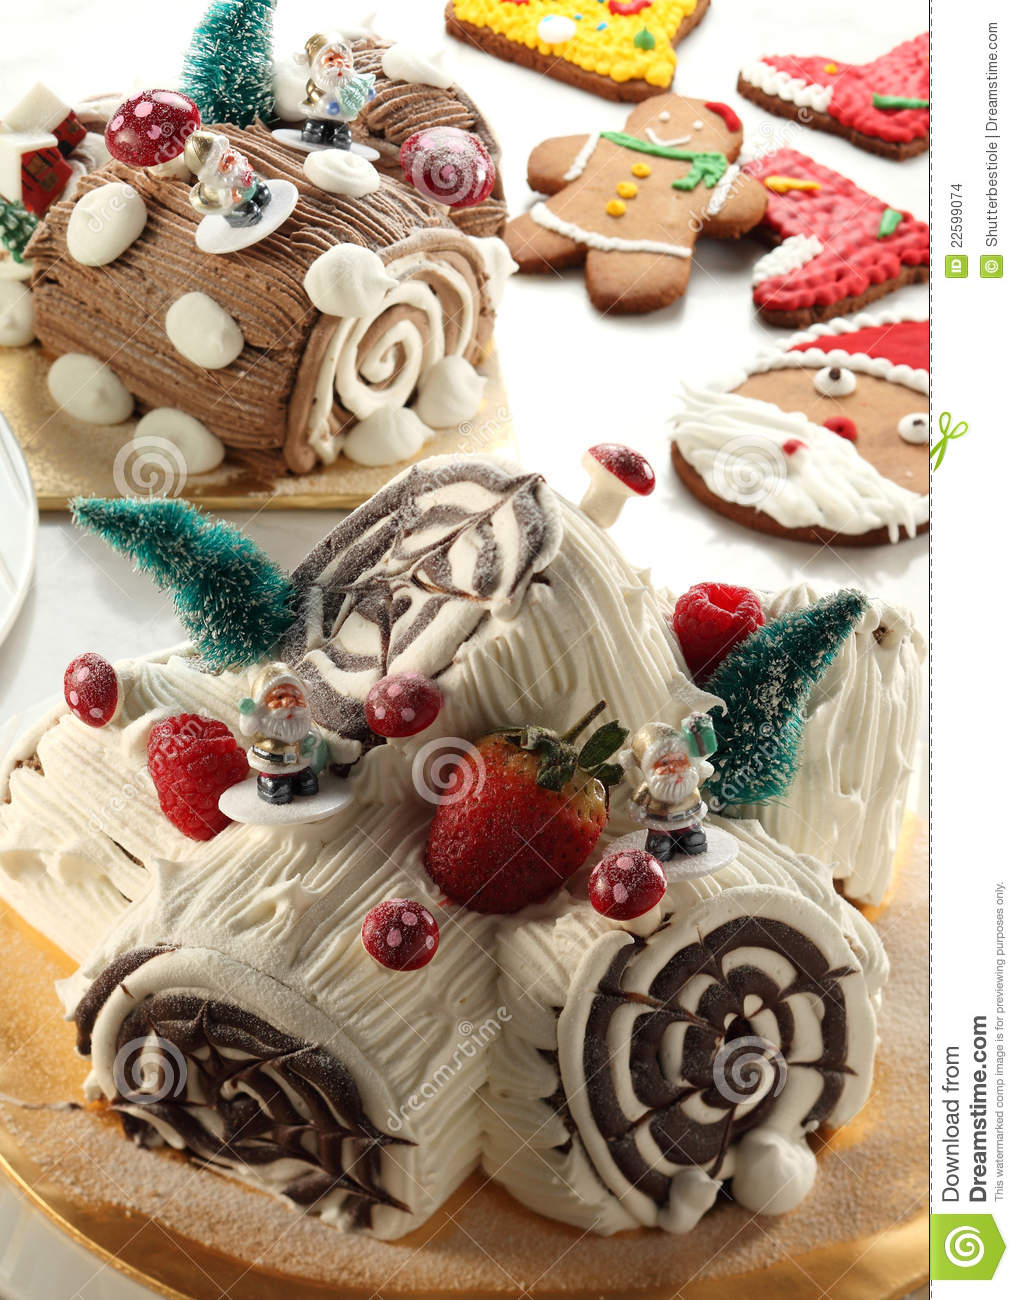 Christmas Yule Log Cake.Christmas Yule Log Cake Stock Photo Image Of Chocolate